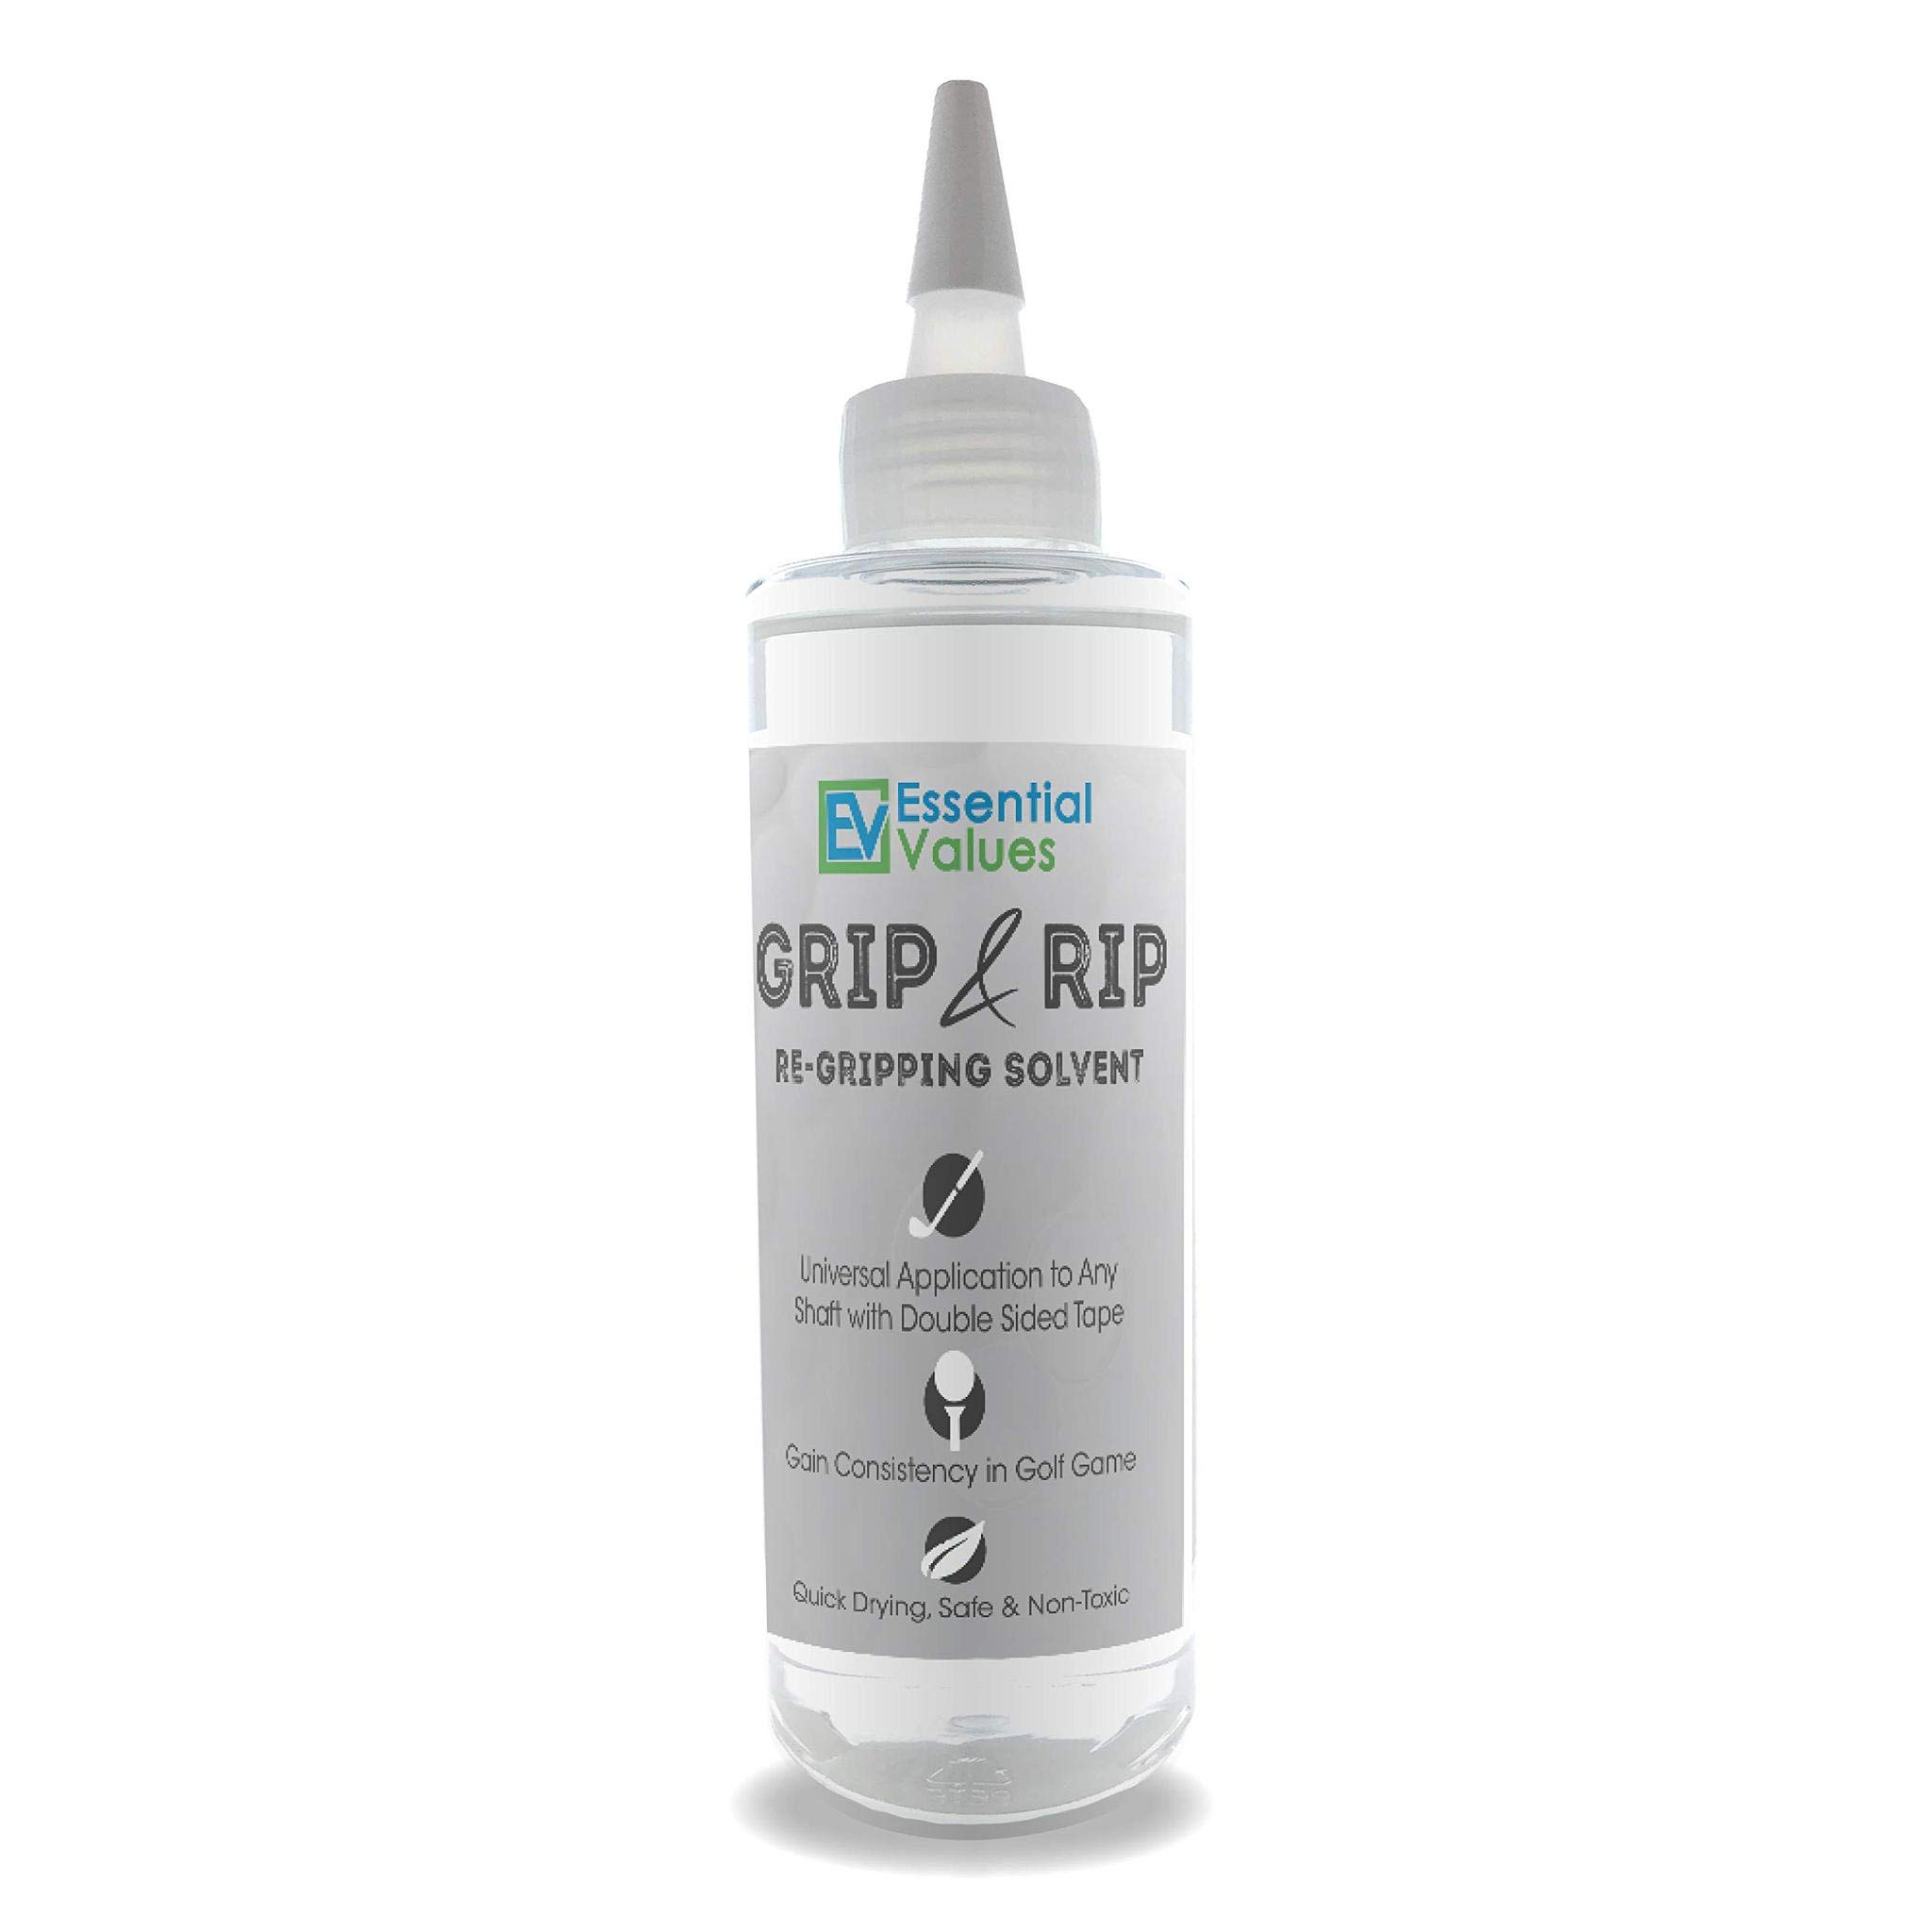 Essential Values Golf Regripping Solvent (8 Fl Oz), Double The Solution Compared to Others - Excellent for Quick & Easy Regripping of Golf Clubs - Made in USA by Essential Values